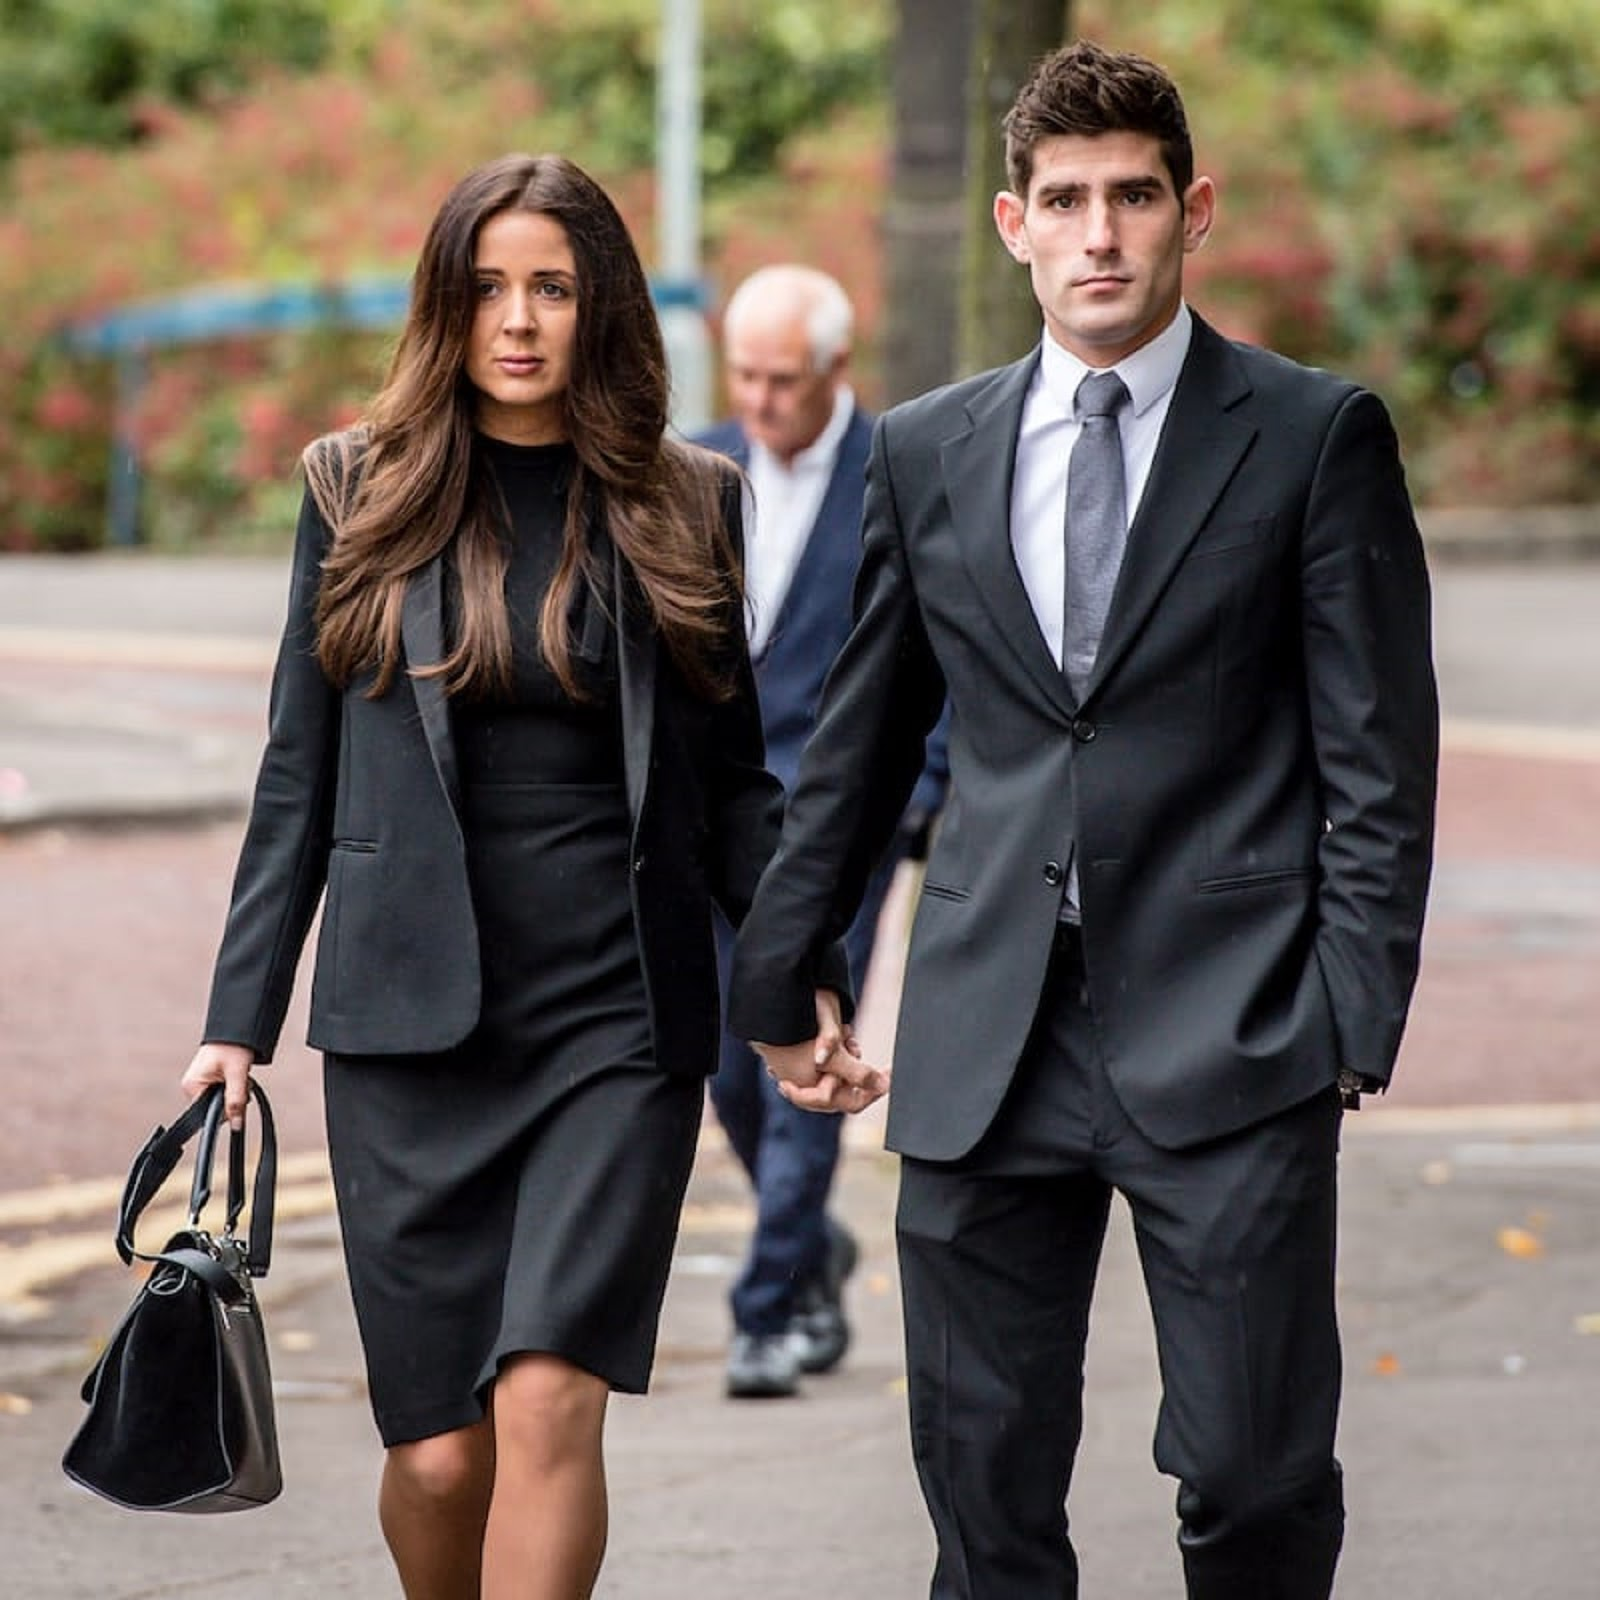 CHED EVANS 4